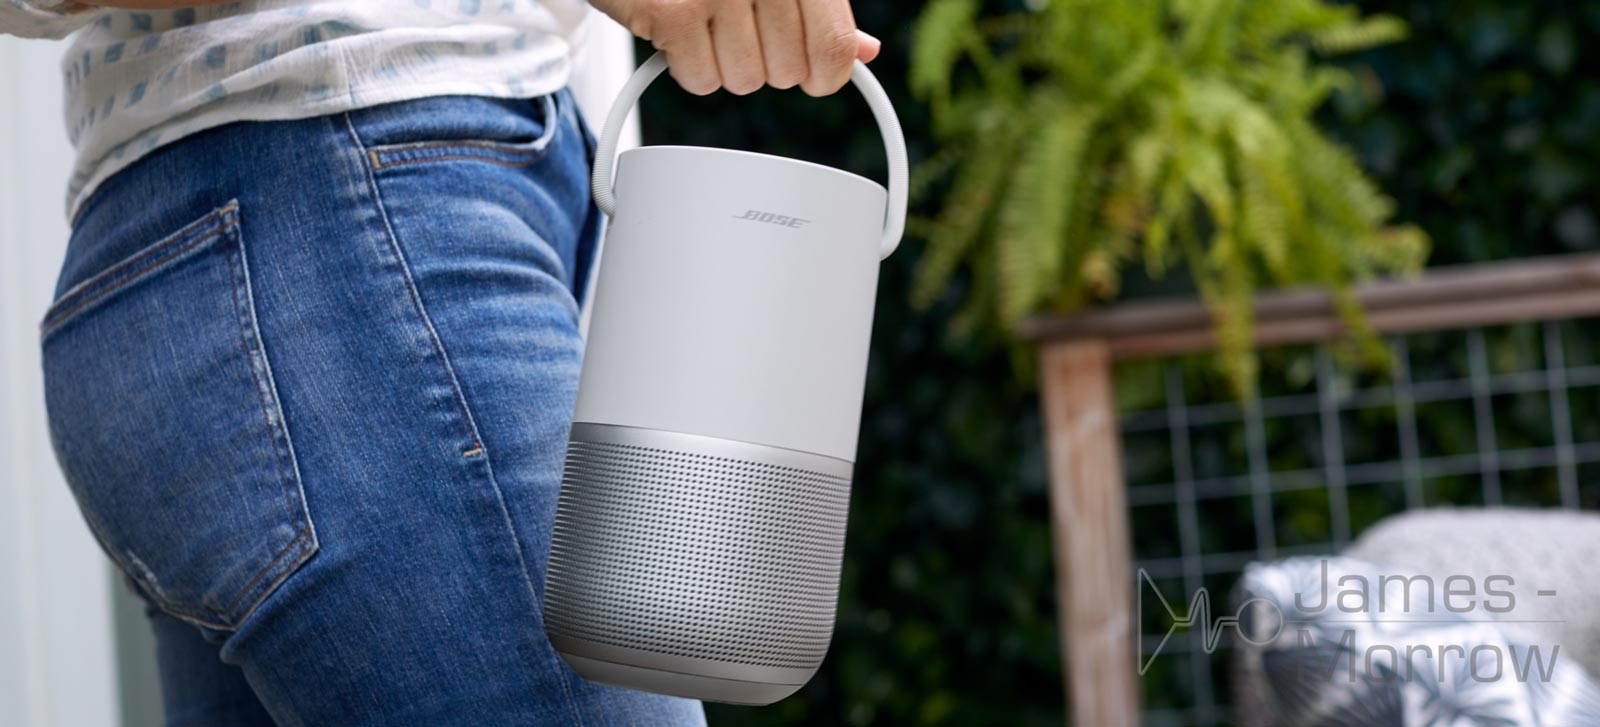 bose portable home speaker silver being carried lifestyle image